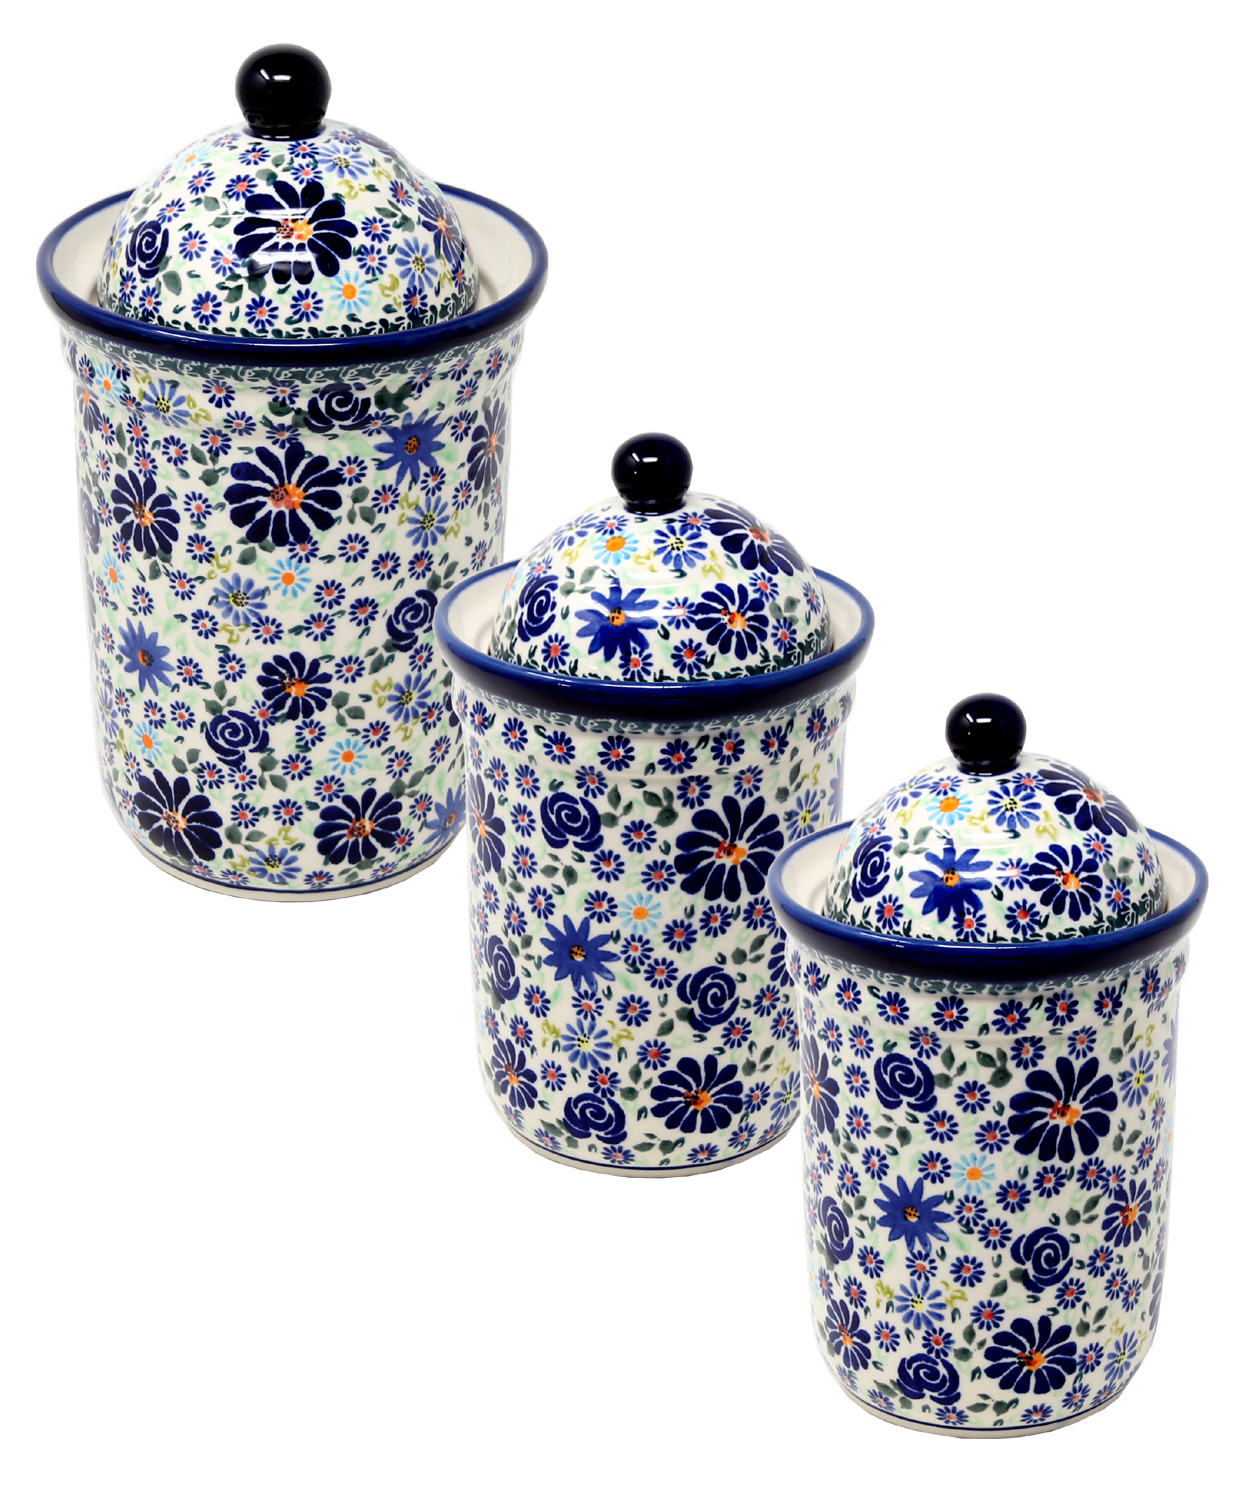 Polish Pottery 3 PC Canister Set from Zaklady in DU126 pattern